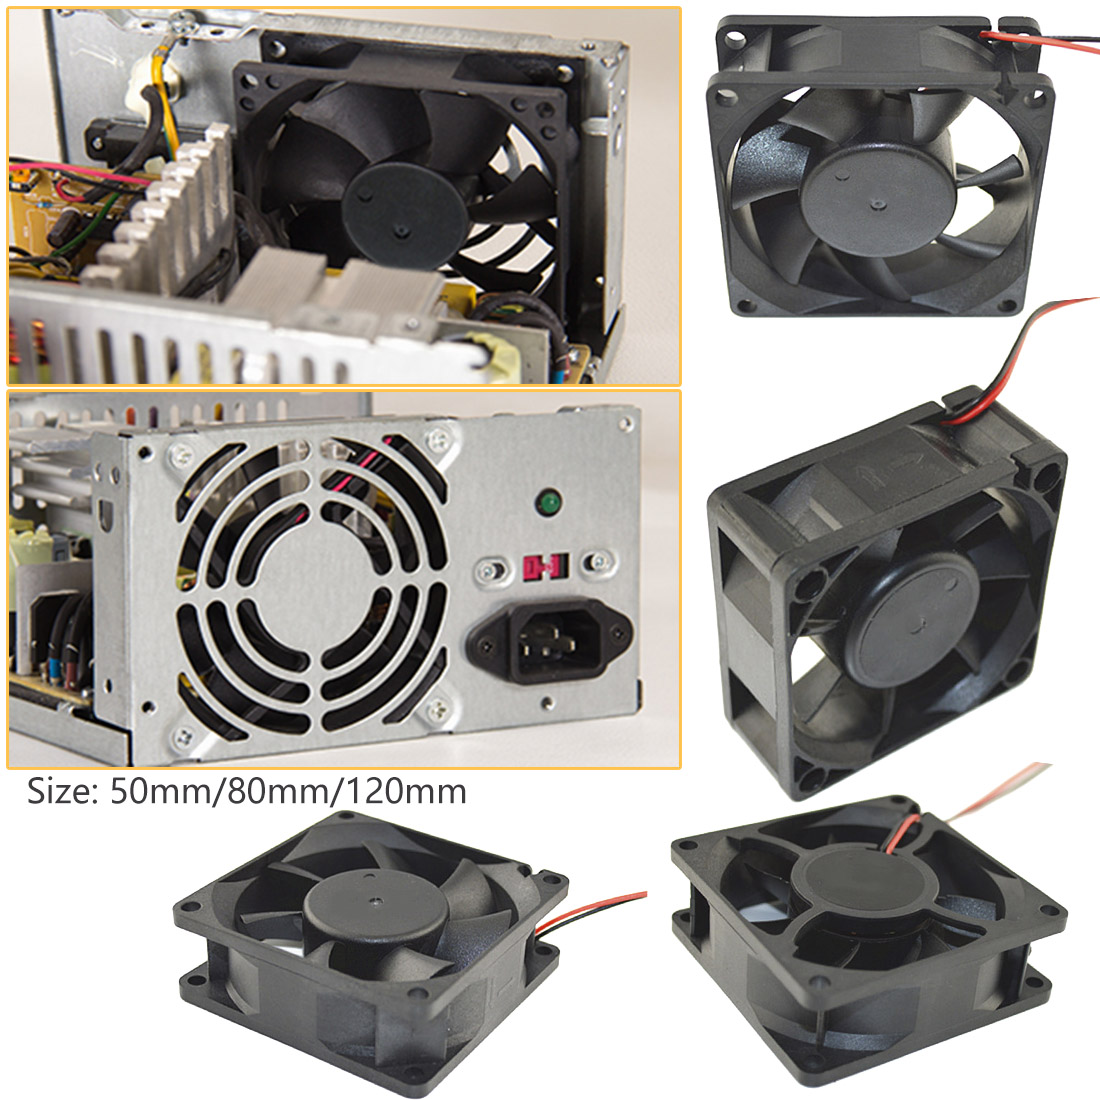 <font><b>12V</b></font> Cooler <font><b>Fan</b></font> for PC 2-Pin 50mm 80mm <font><b>120</b></font> <font><b>mm</b></font> Computer CPU System Heatsink Brushless Cooling <font><b>Fan</b></font> image